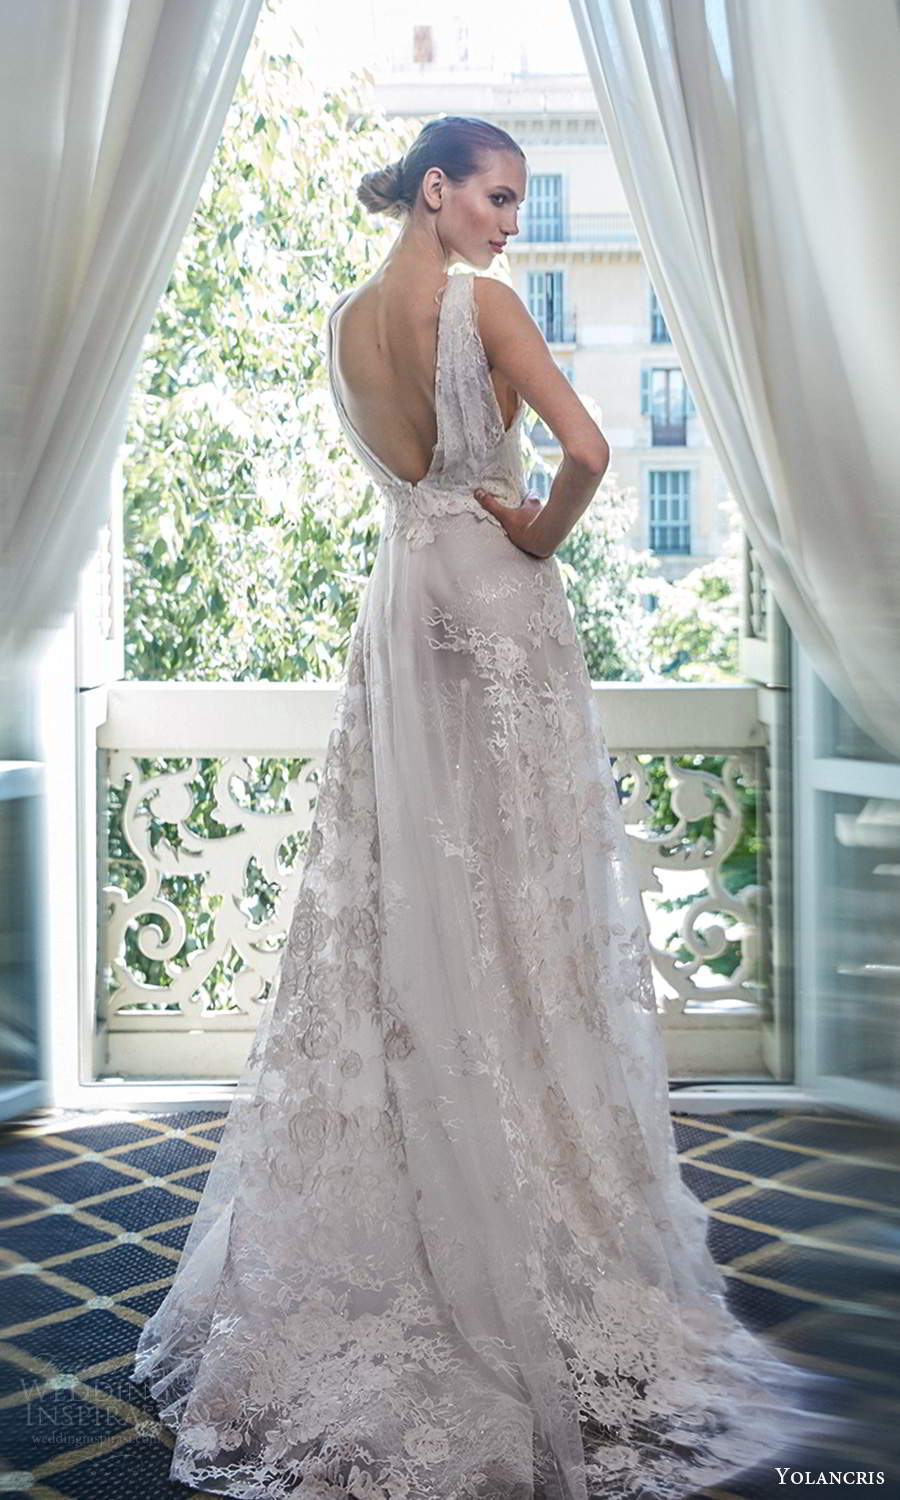 yolancris 2020 bridal couture sleeveless straps plunging v neckline fully embellished a line ball gown wedding dress chapel train scoop back (16) bv